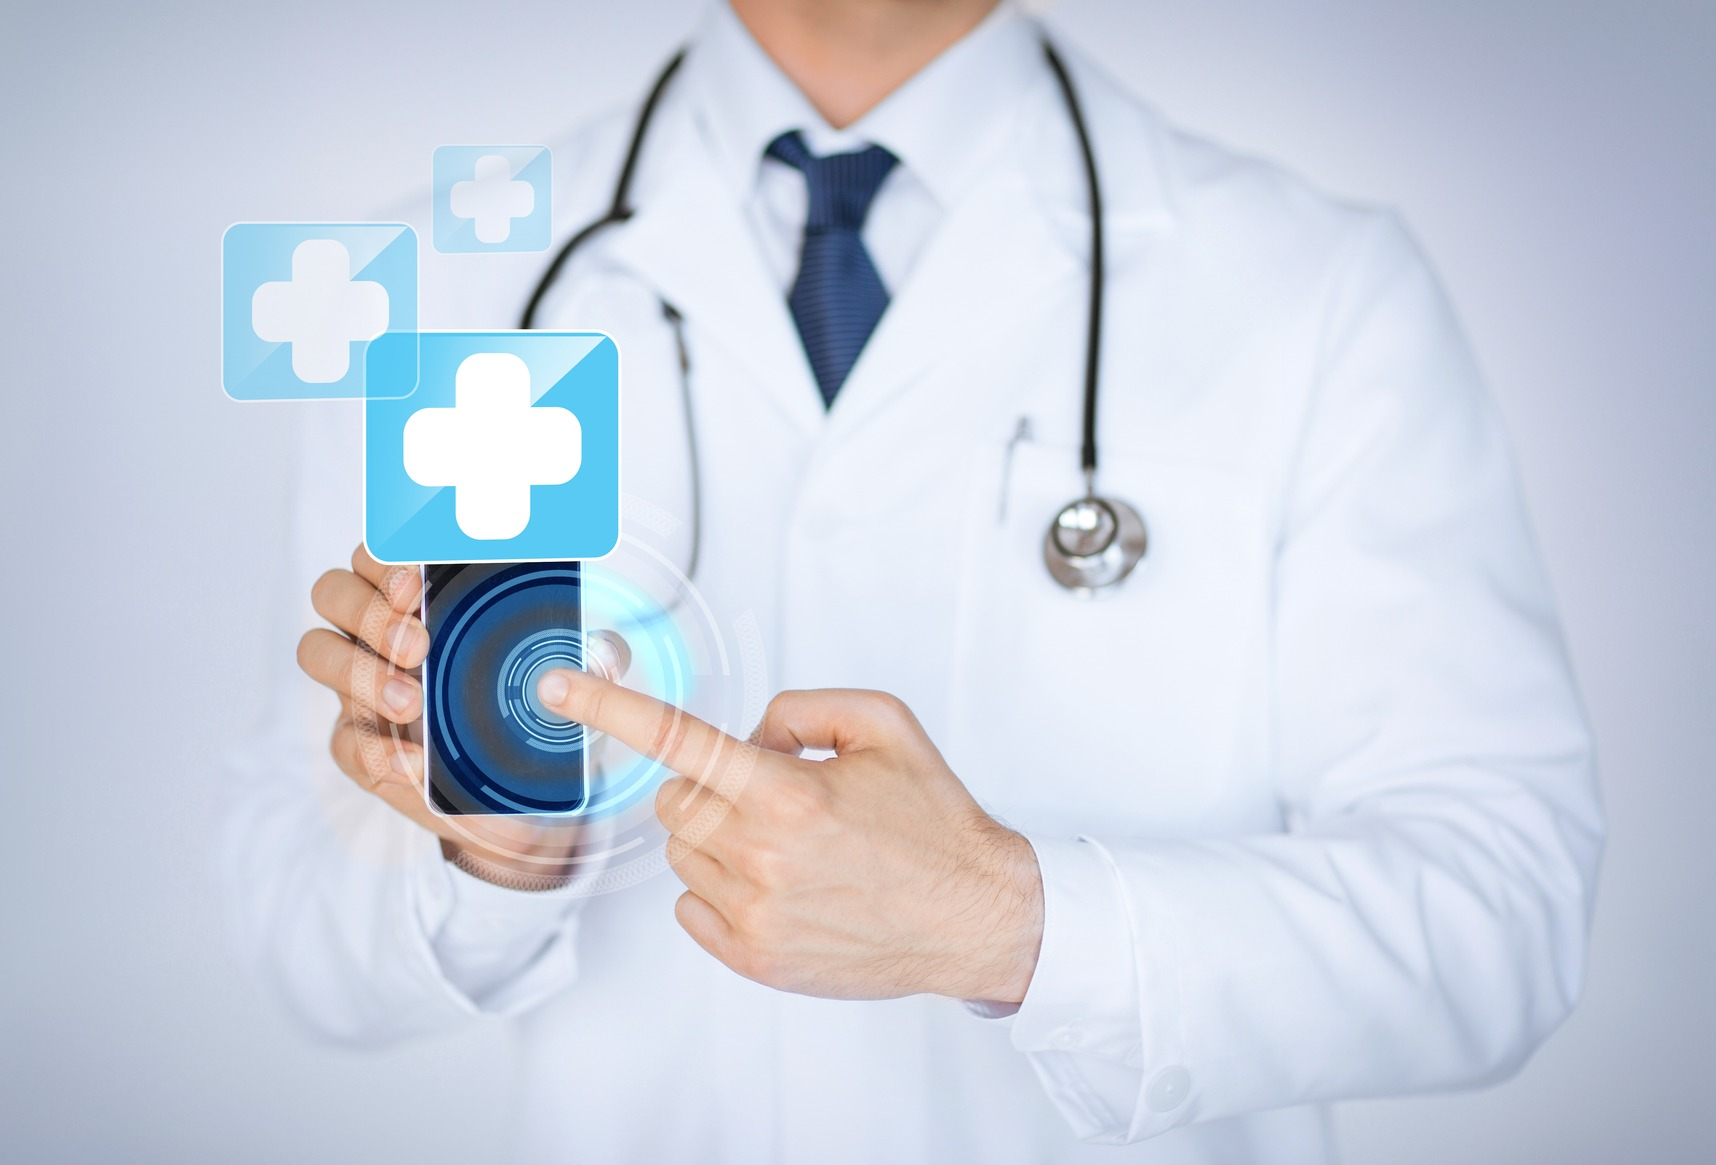 mobile health Thanks to mobile health, lack of mobility is no longer an obstacle to good health care lack of mobility should never prevent you from getting the medical attention you need.